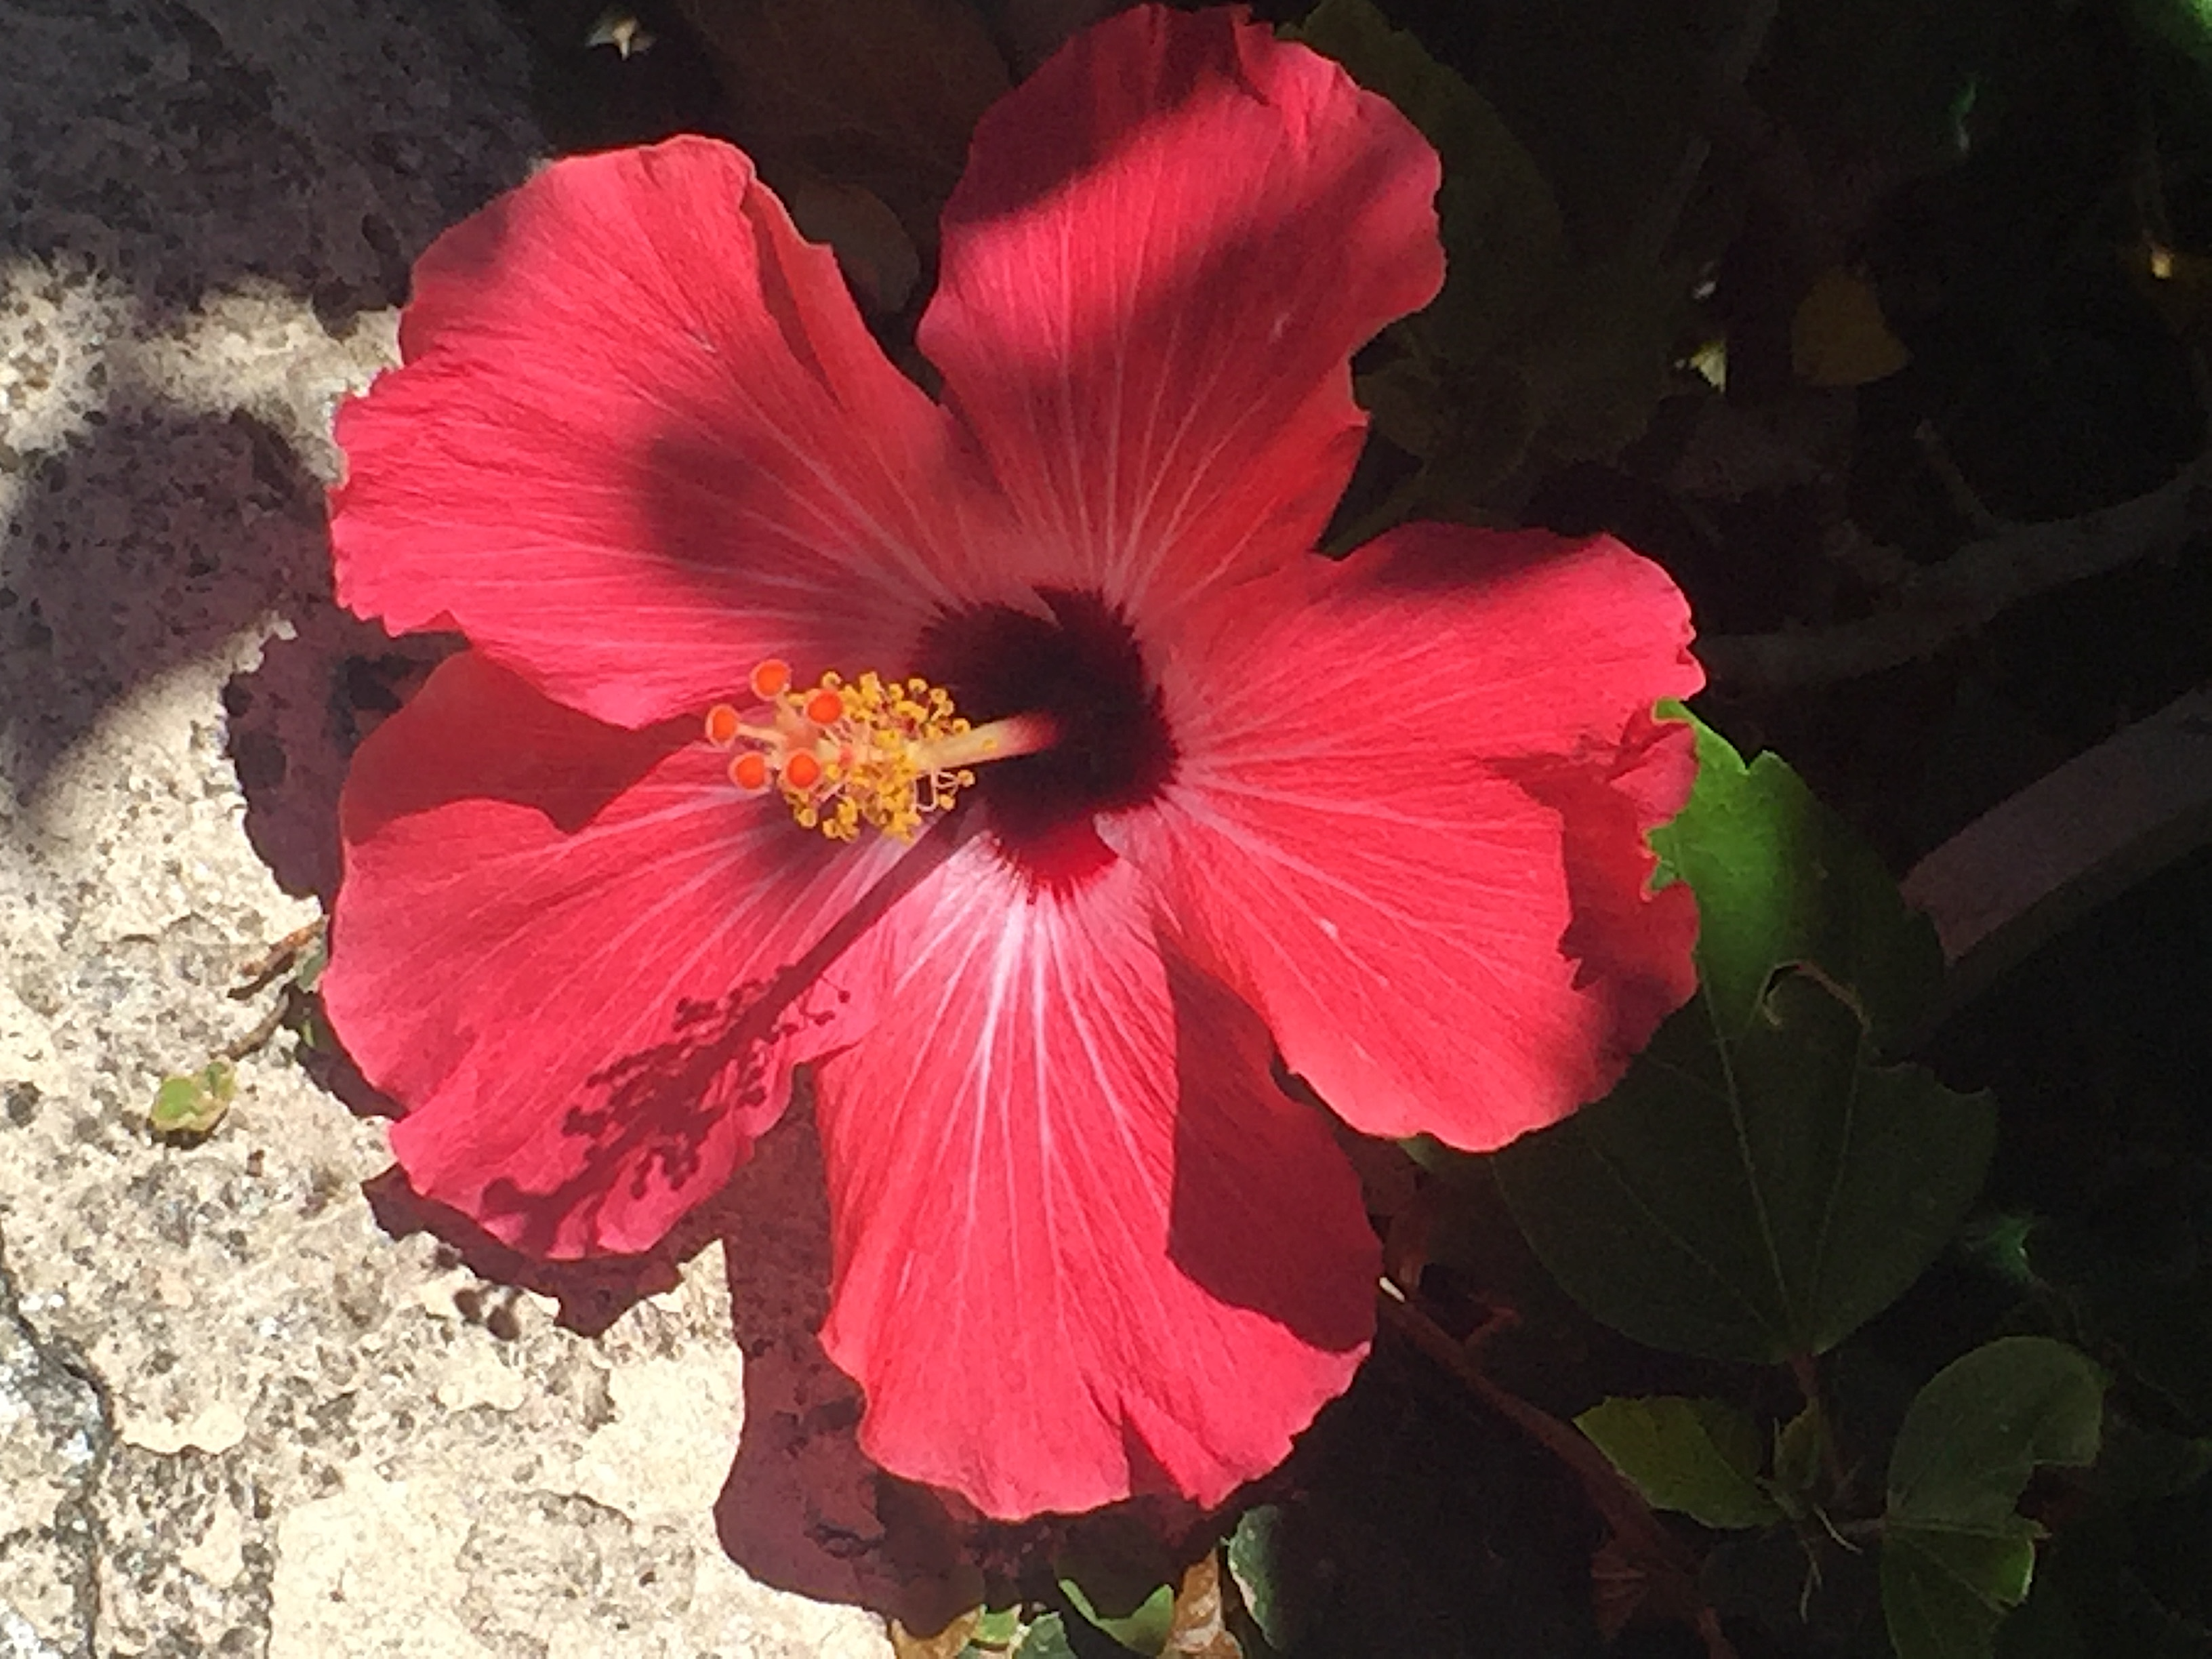 Red hibiscus flower of the day may 21 2018 lifelessons a blog red hibiscus flower of the day may 21 2018 lifelessons a blog by judy dykstra brown izmirmasajfo